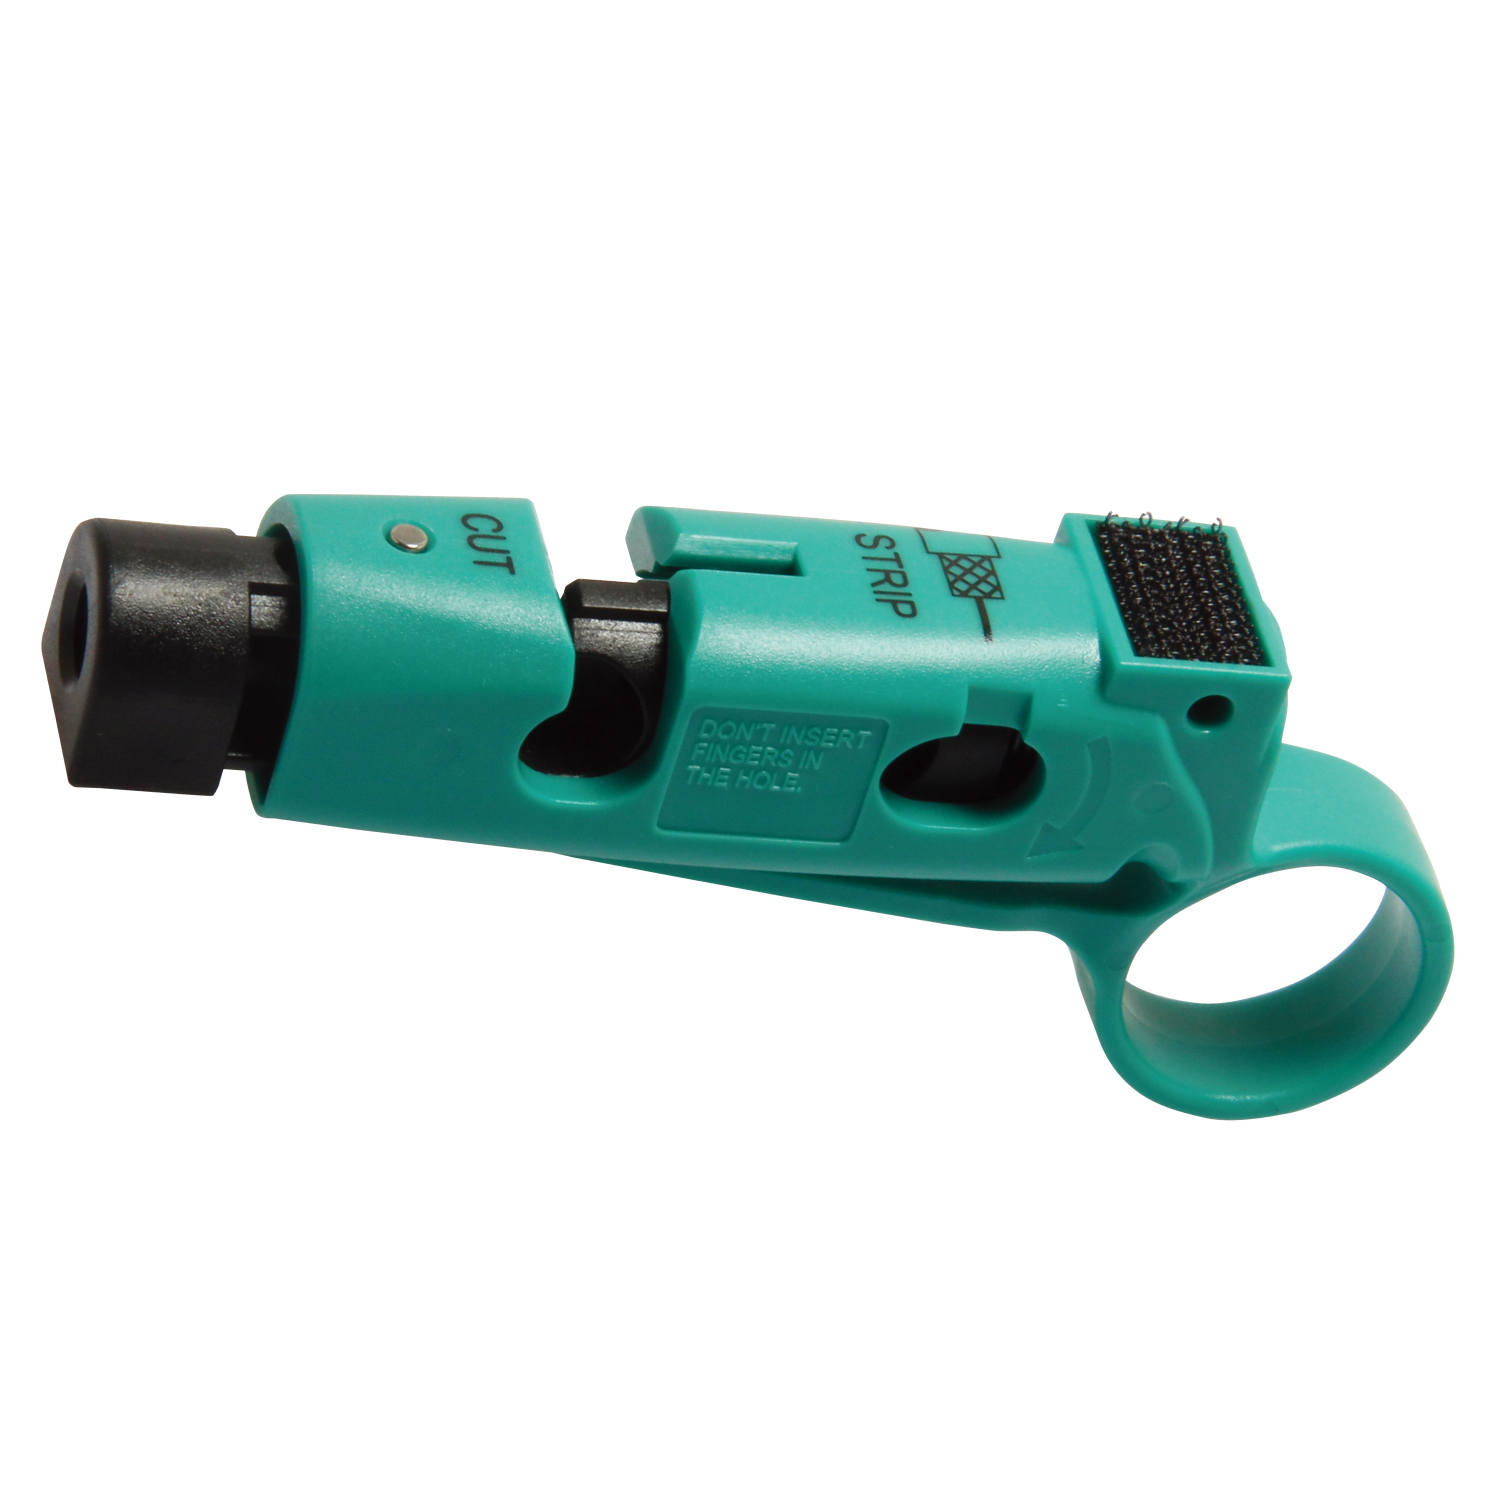 Taiwan po workers CP-507 coaxial cable stripper (rg-59/6) strippers/stripping knife cable Leather knife